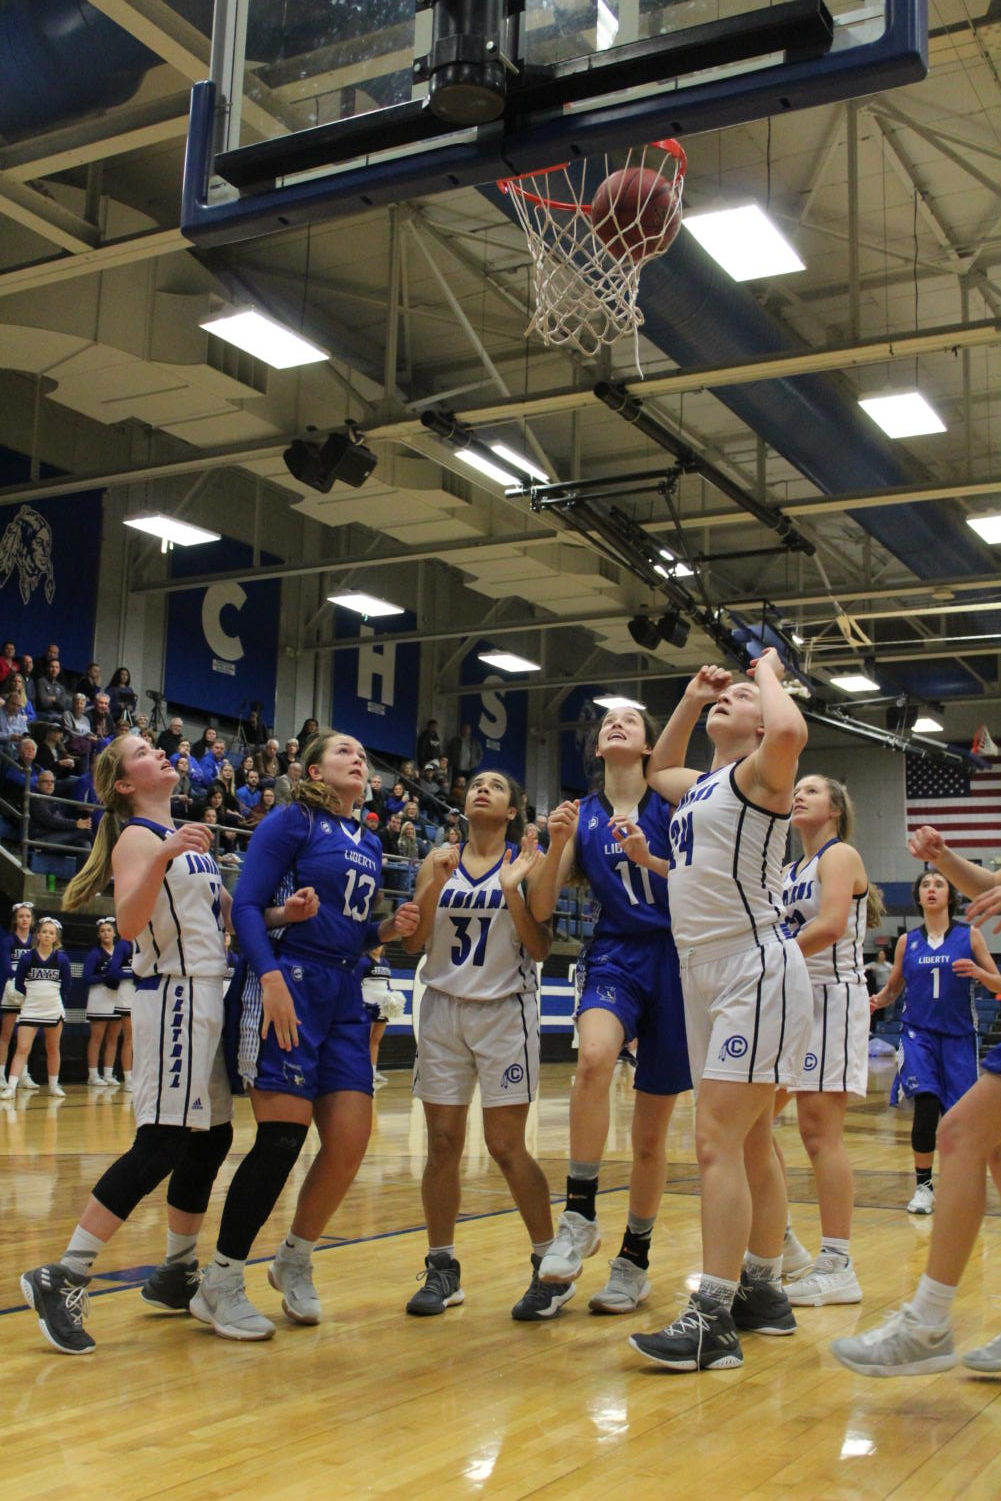 The Lady Jays prepare to grab a rebound in a game against St. Joseph Central High School on January 12, where LHS won 55-54. Photo by Chrystian Noble.